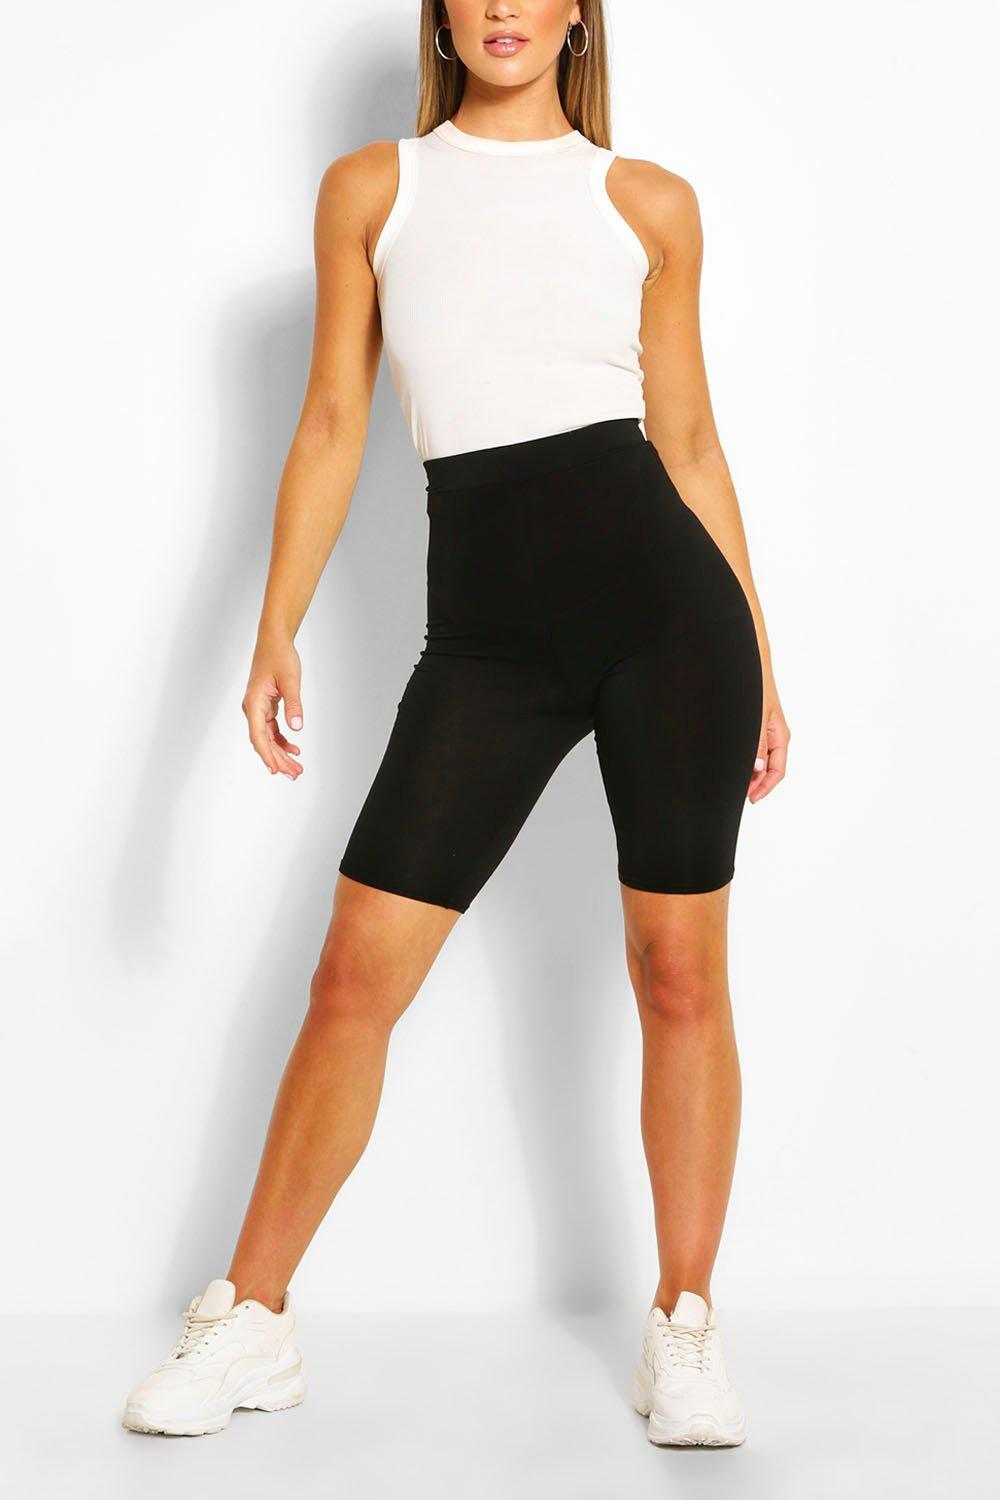 Don't Miss Out Basic Solid Cycling Shorts